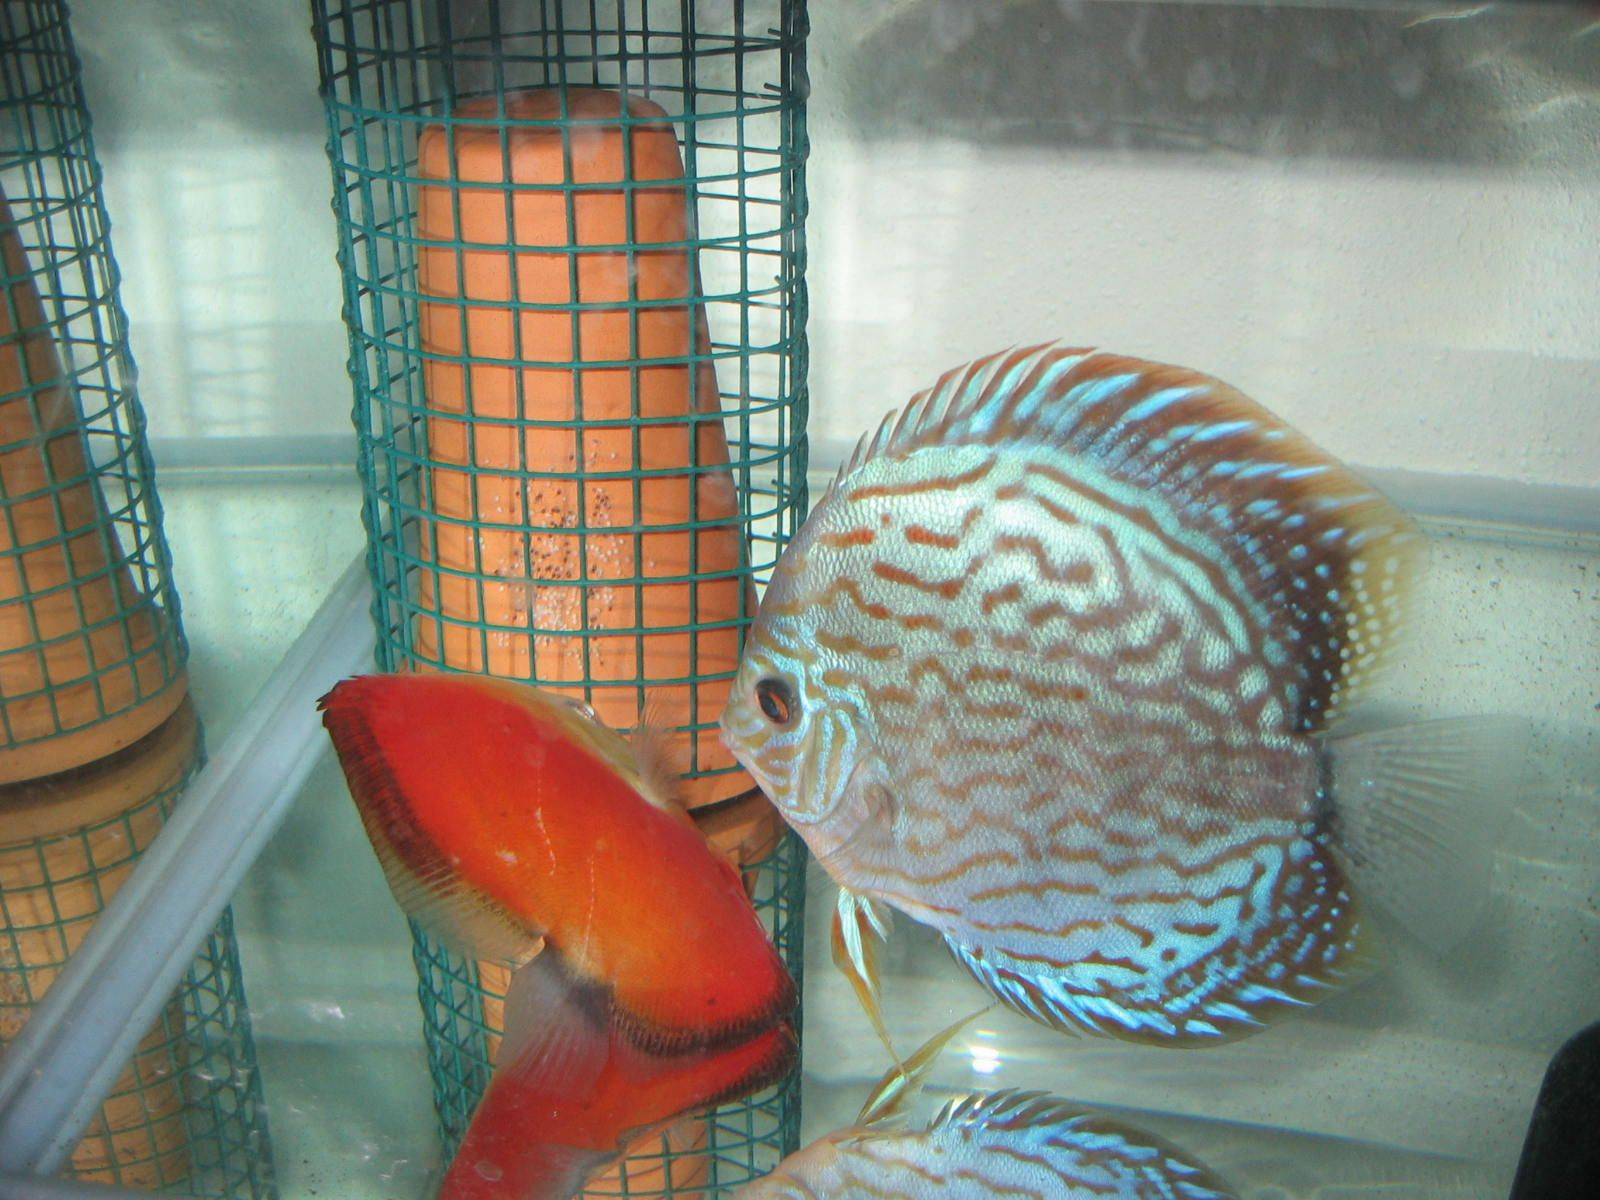 Best Discus Setup - The Secerts Of Breeding Discus Tropical